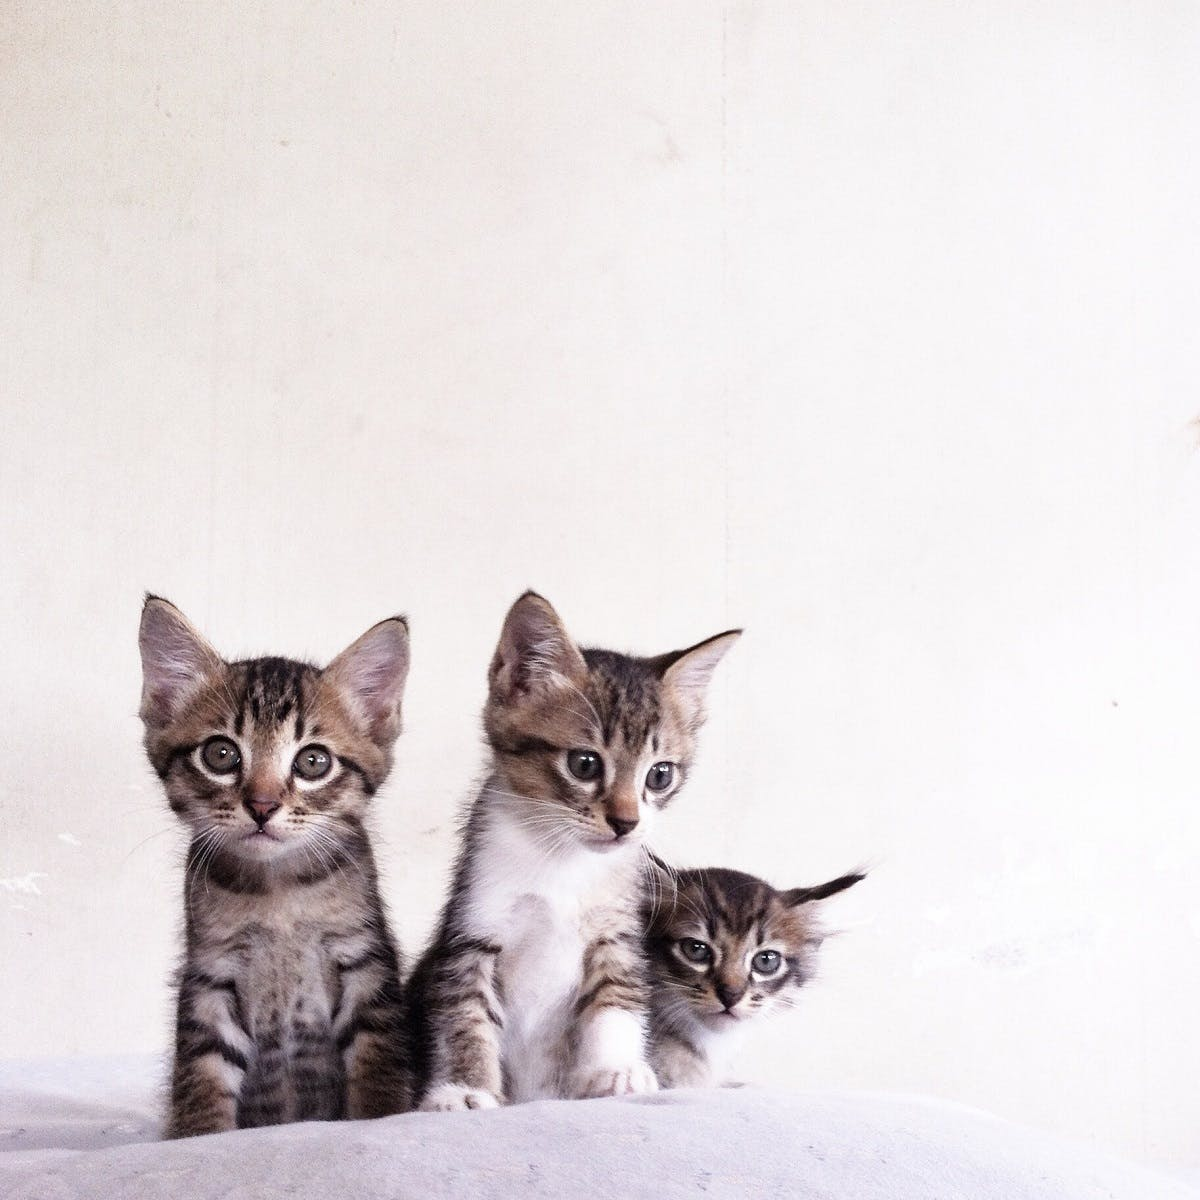 Three small tabby kittens sit on a white blanket